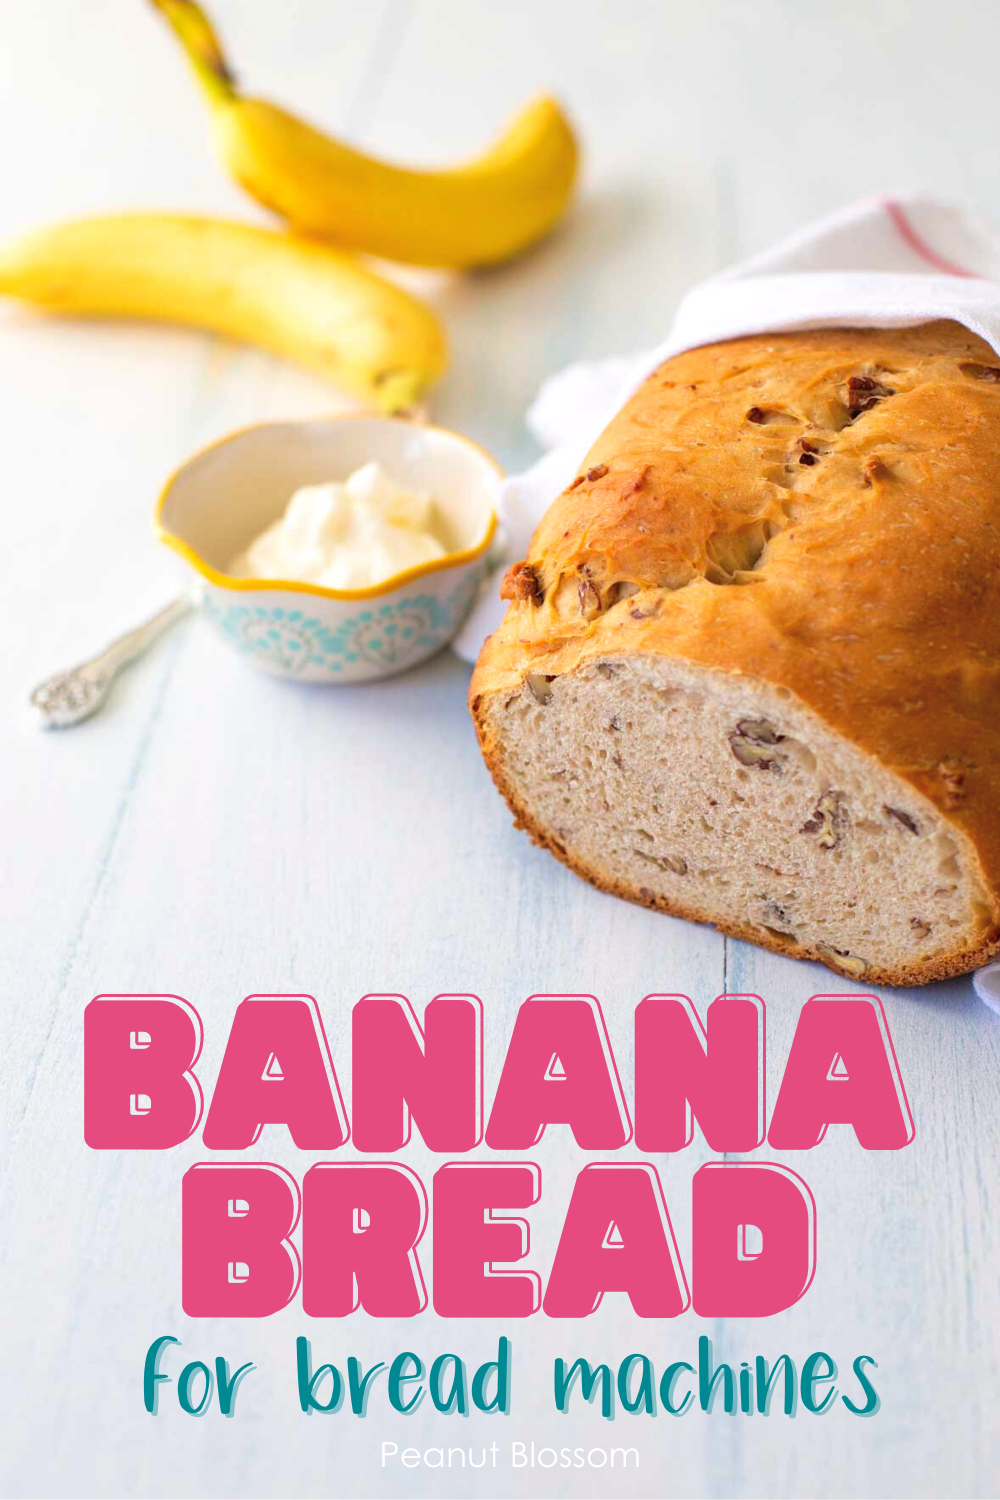 The finished banana bread sits on a table next to a few bananas and a bowl of cream cheese.